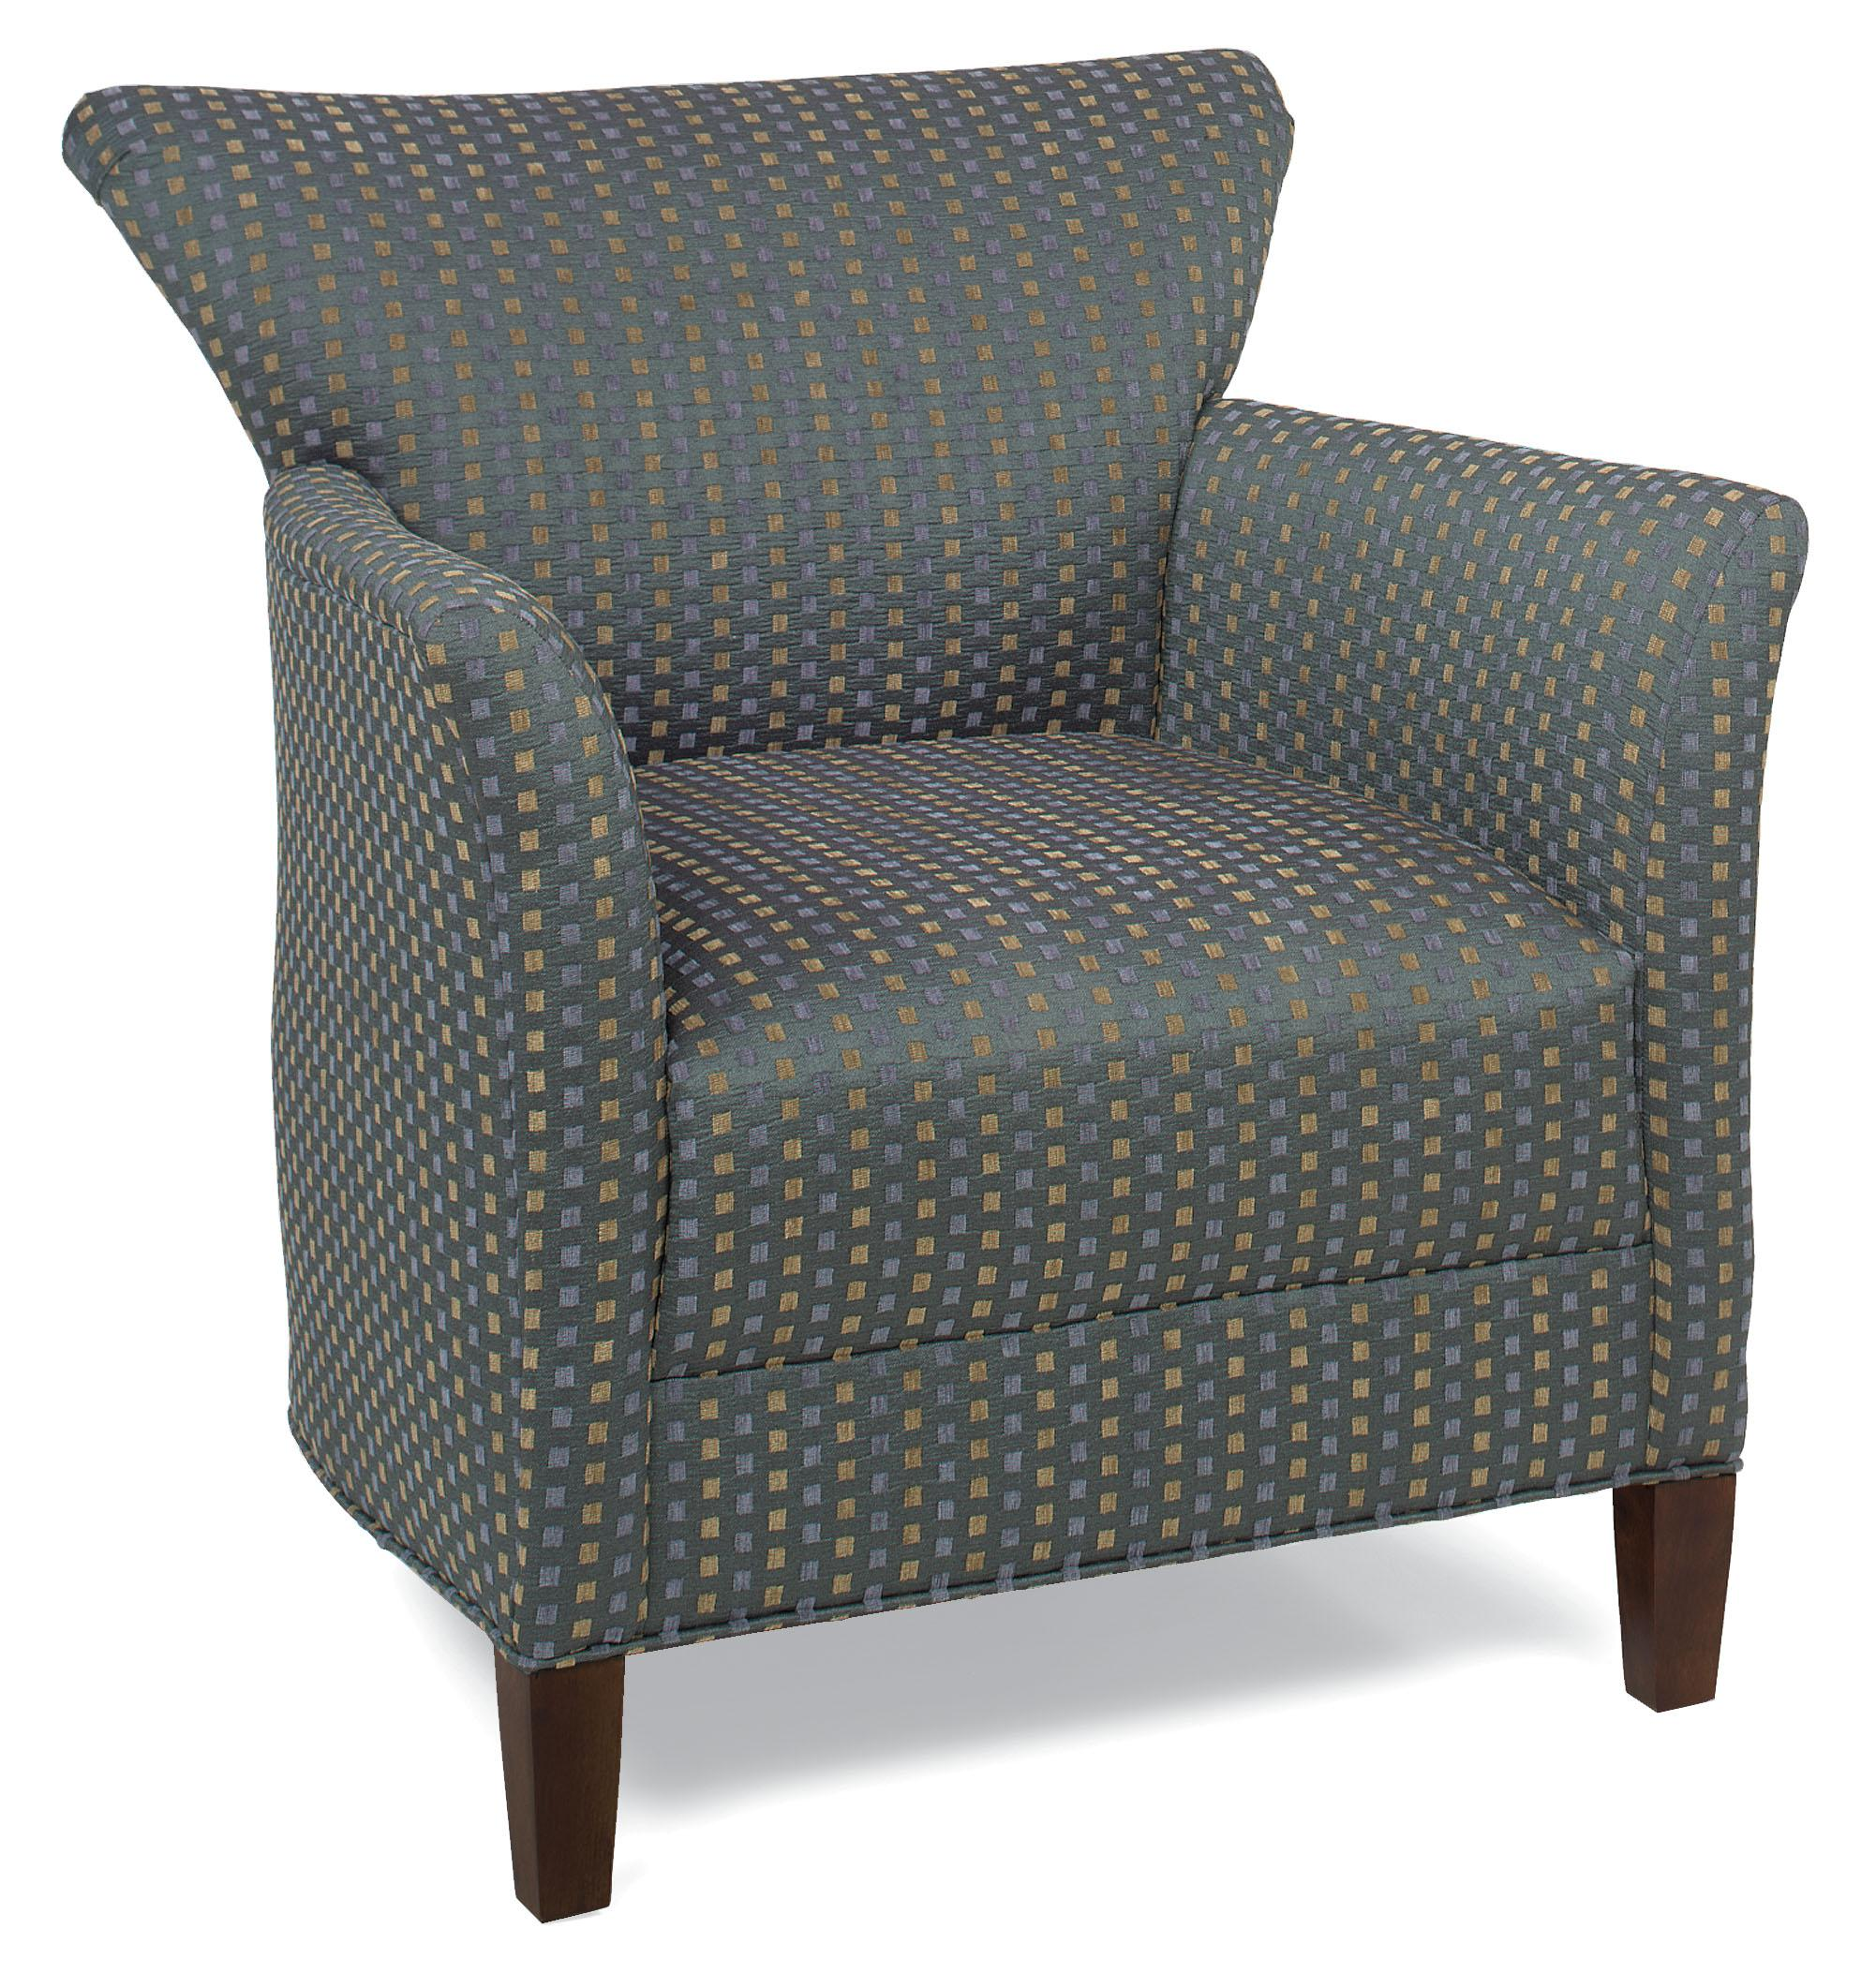 Fairfield Chairs Upholstered Chair - Item Number: 1814-01